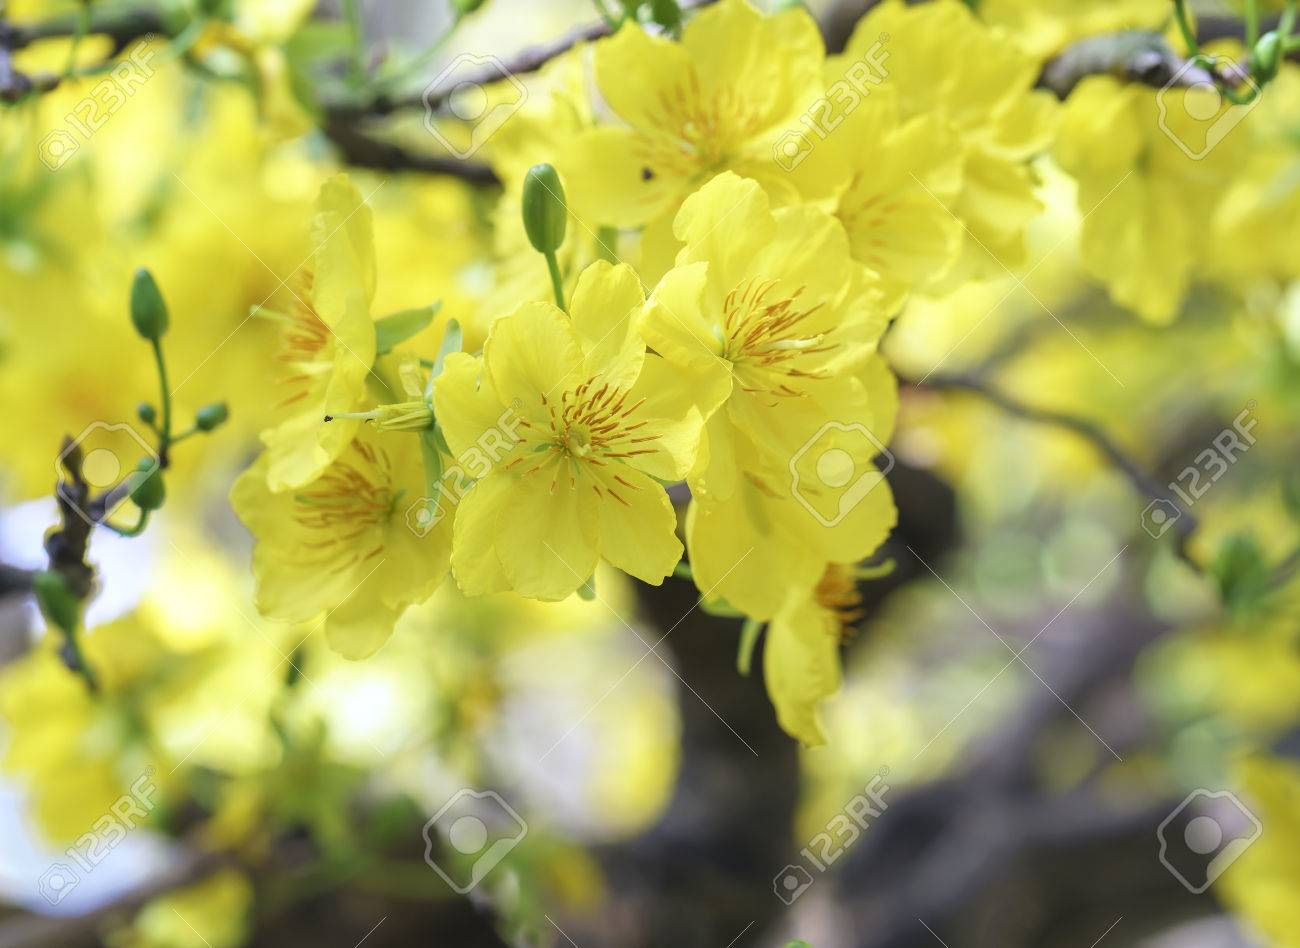 Apricot Flowers Blooming In Vietnam Lunar New Year With Fragrant